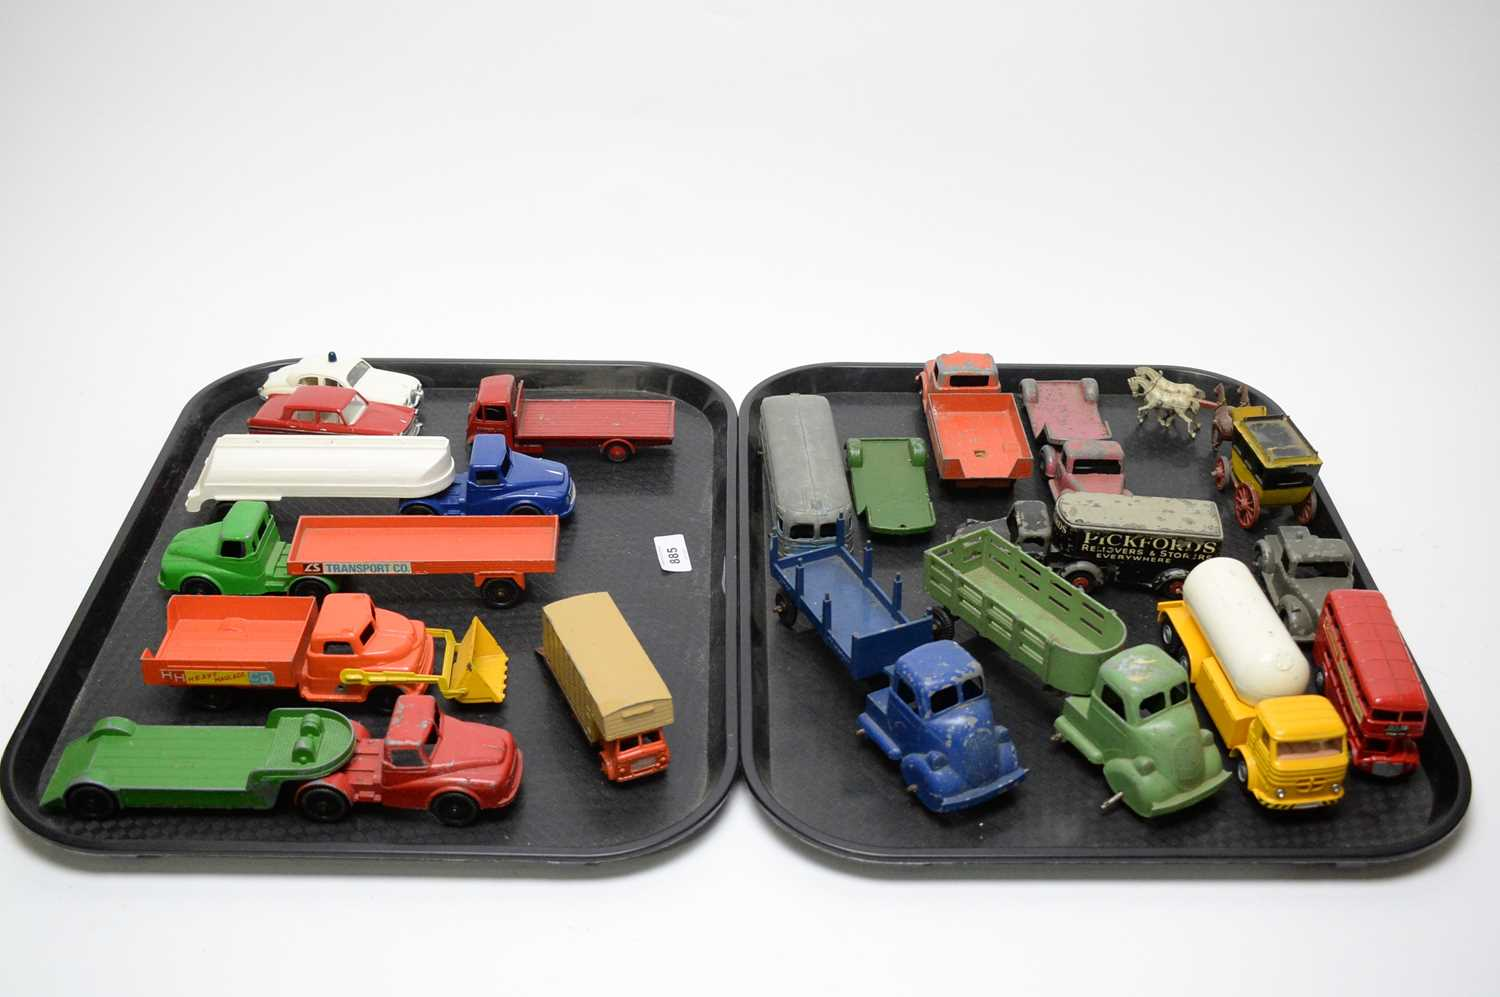 Lot 885 - Diecast model vehicles.